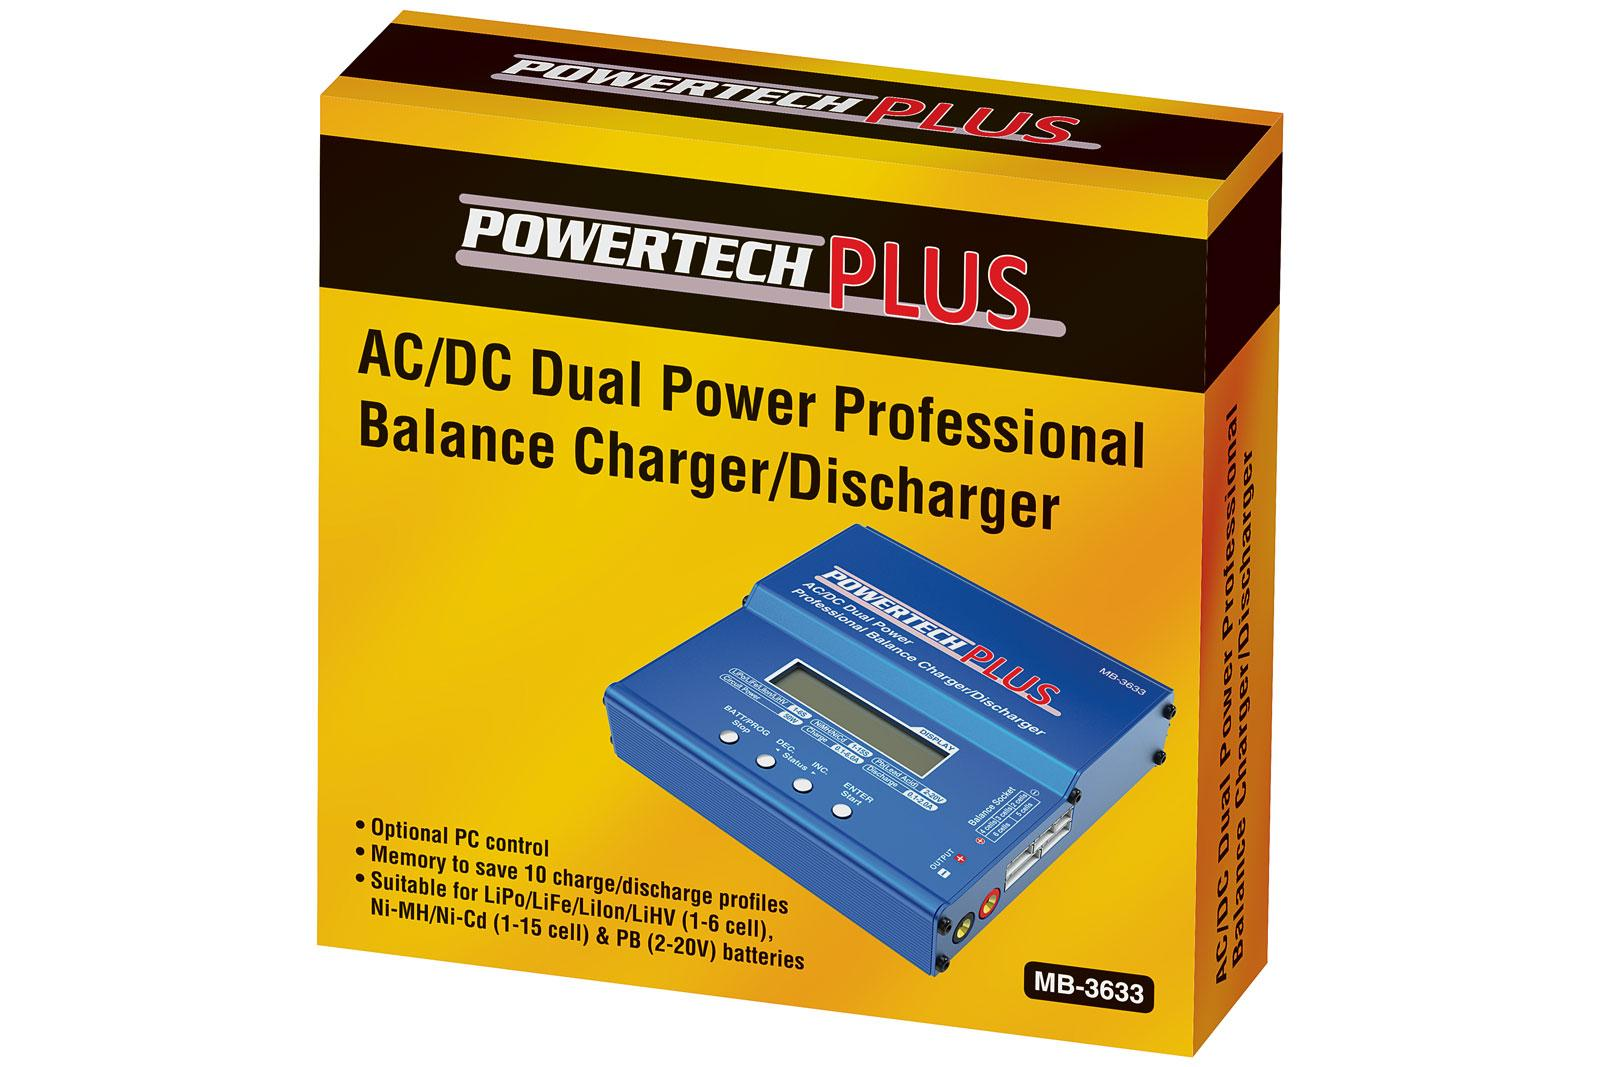 Get It Now Powertech Plus Multi Cell Balance Charger Diyode Magazine Lipo Charging How To Charge Your Packs The First Observation We Made Is That There Are Plenty Of Cable Adaptors Included Suit Various Battery Pack Connections So Only Took Us A Few